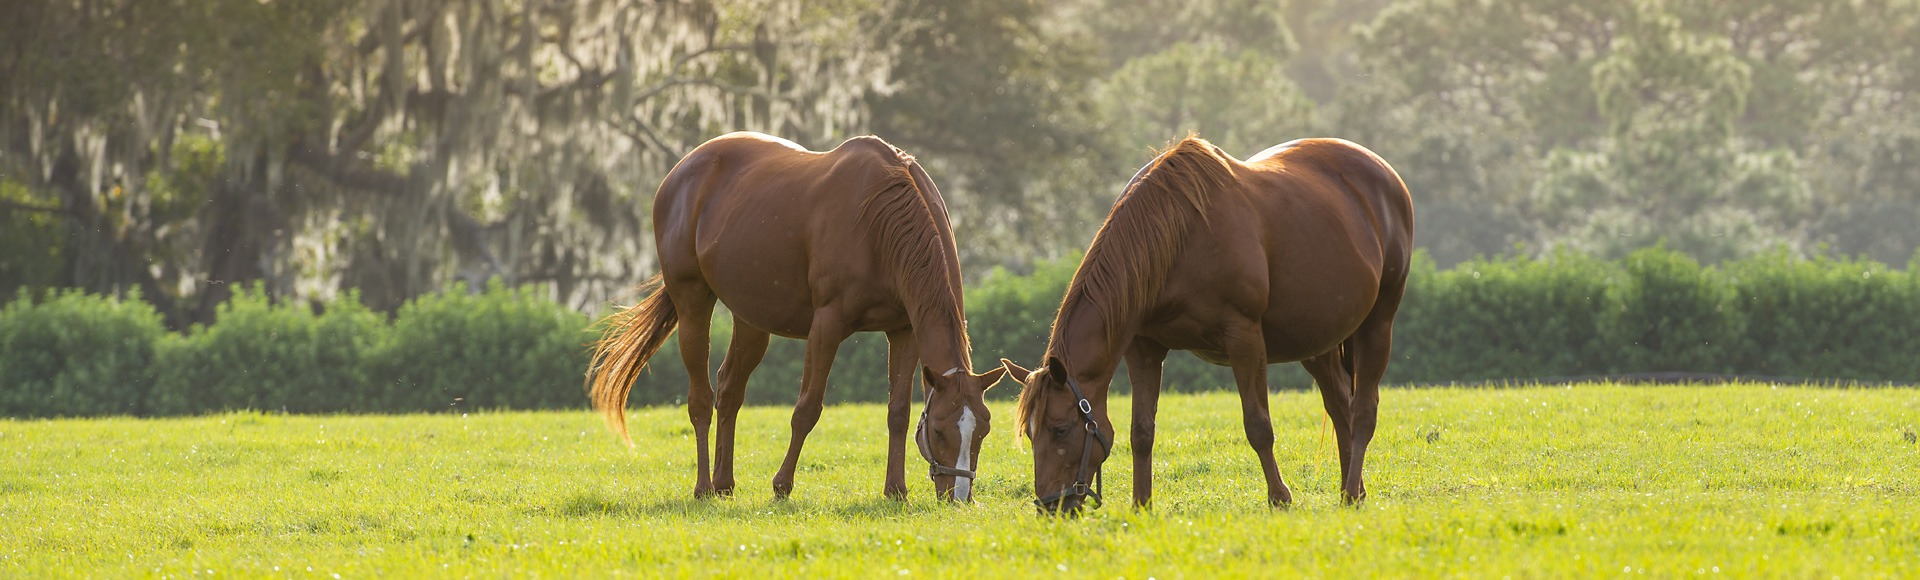 Horses grazing in a field in Sorrento Florida